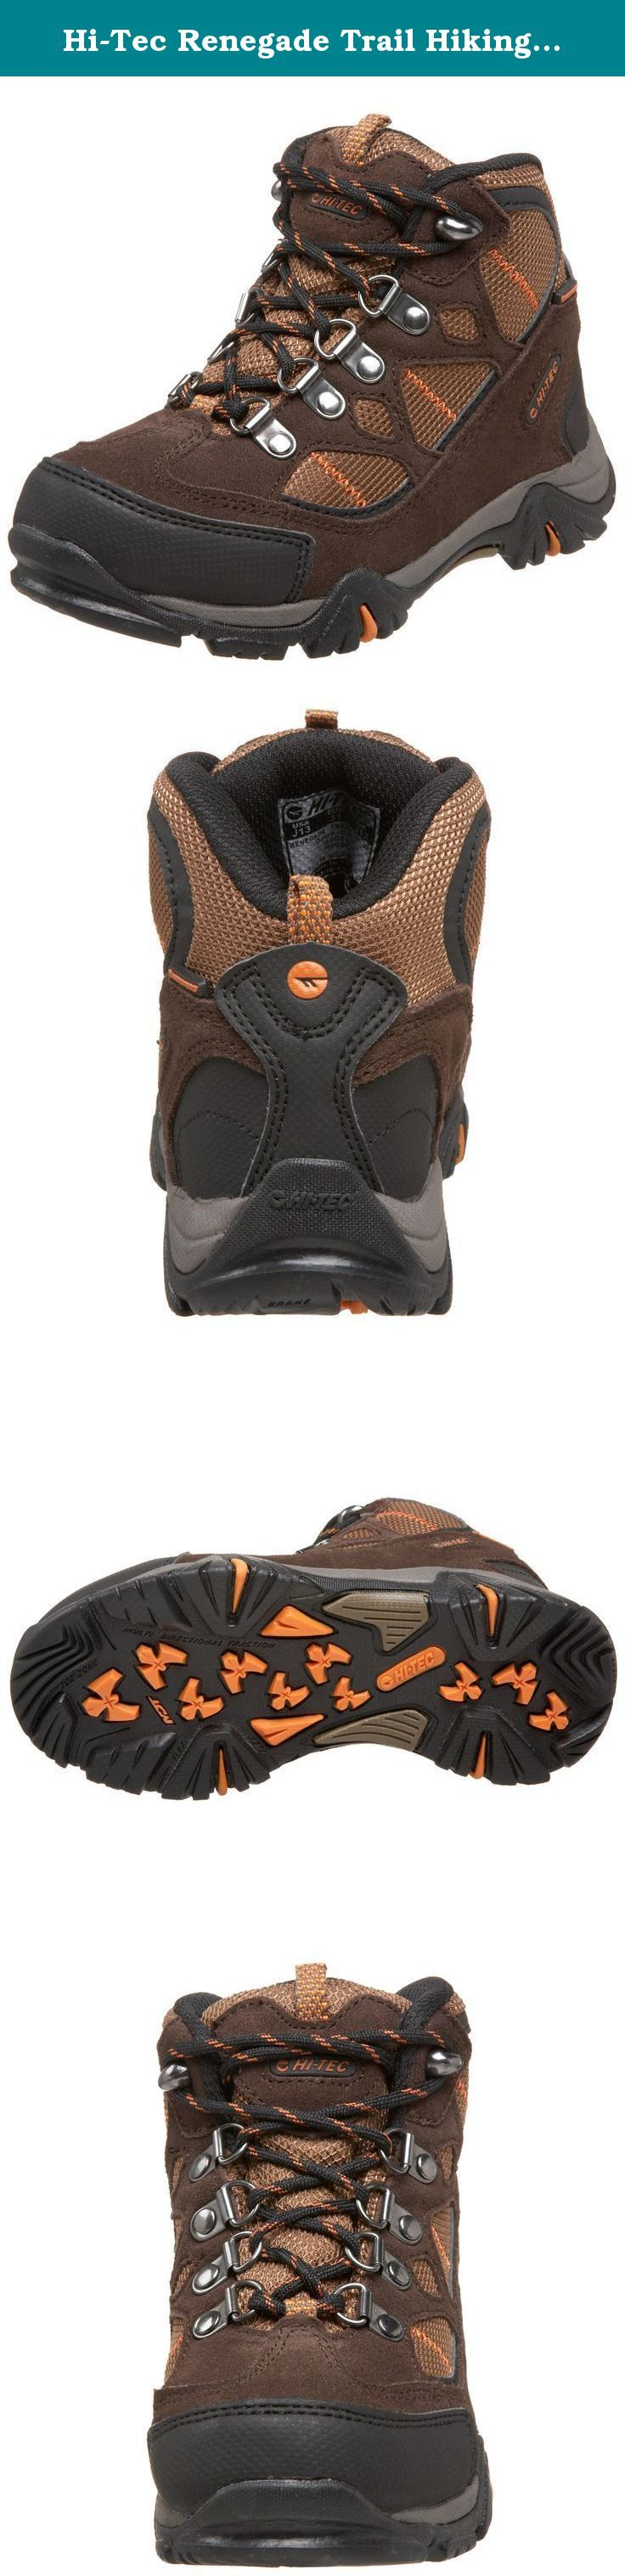 Hi-Tec Renegade Trail Hiking Boot (Toddler/Little Kid/Big Kid),Dark Chocolate/Burnt Orange/Brown,4 M US Big Kid. Kids Hi - Tec Renegade Trail Waterproof Jr. Hiking Boots keep smaller feet comfy and protected. If you're bringing the kids along on a nature walk, it's smart to equip them with adequate footwear! These Renegades do the job... and then some! They're completely waterproof and seam-sealed to make moisture-related discomfort an afterthought. Extremely comfortable too, with an EVA...